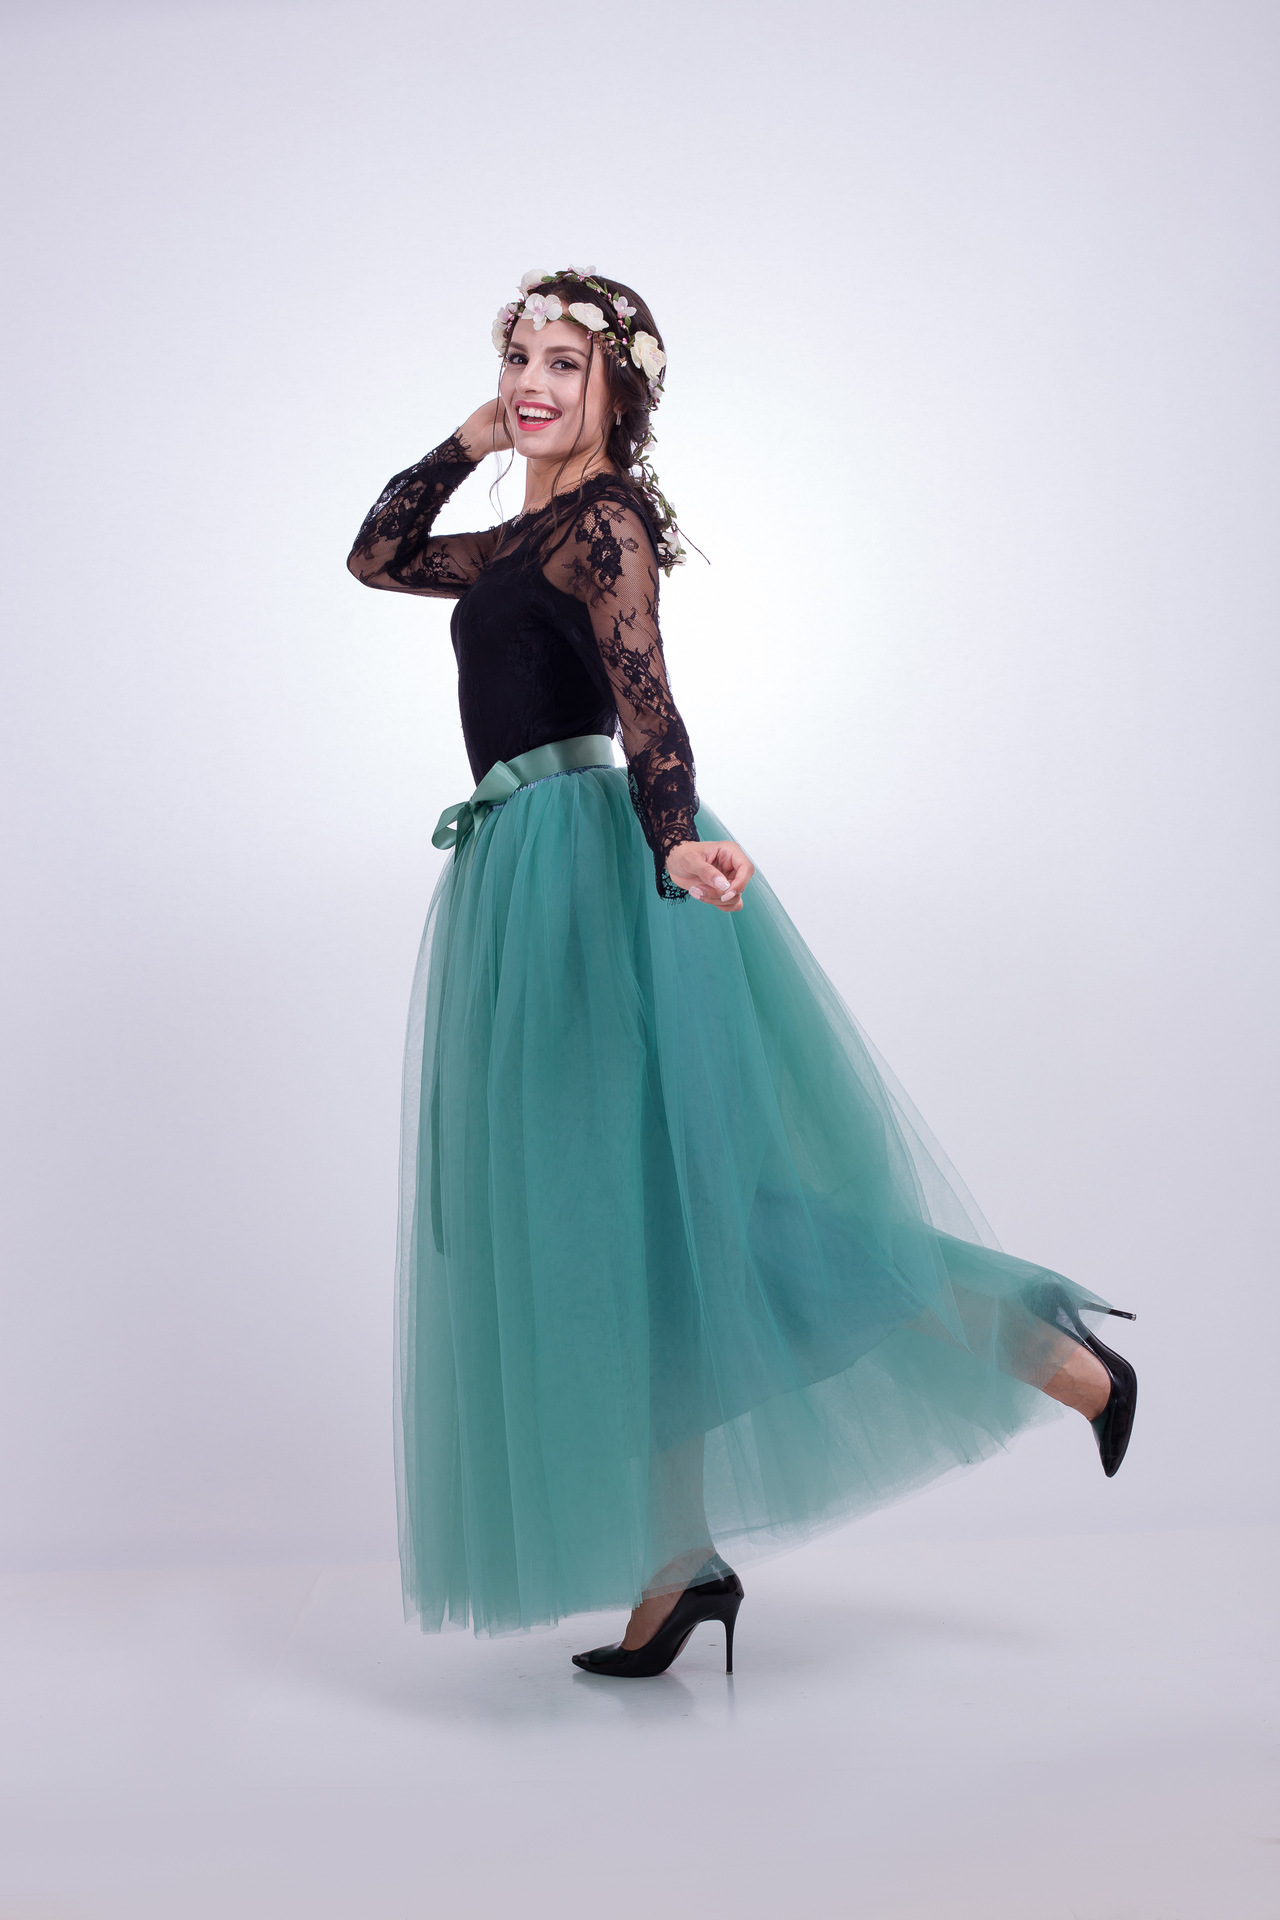 6 Layers Tulle Skirt Summer Maxi Long Muslim Skirt Womens Elastic Waist Lolita Tutu Skirts light teal